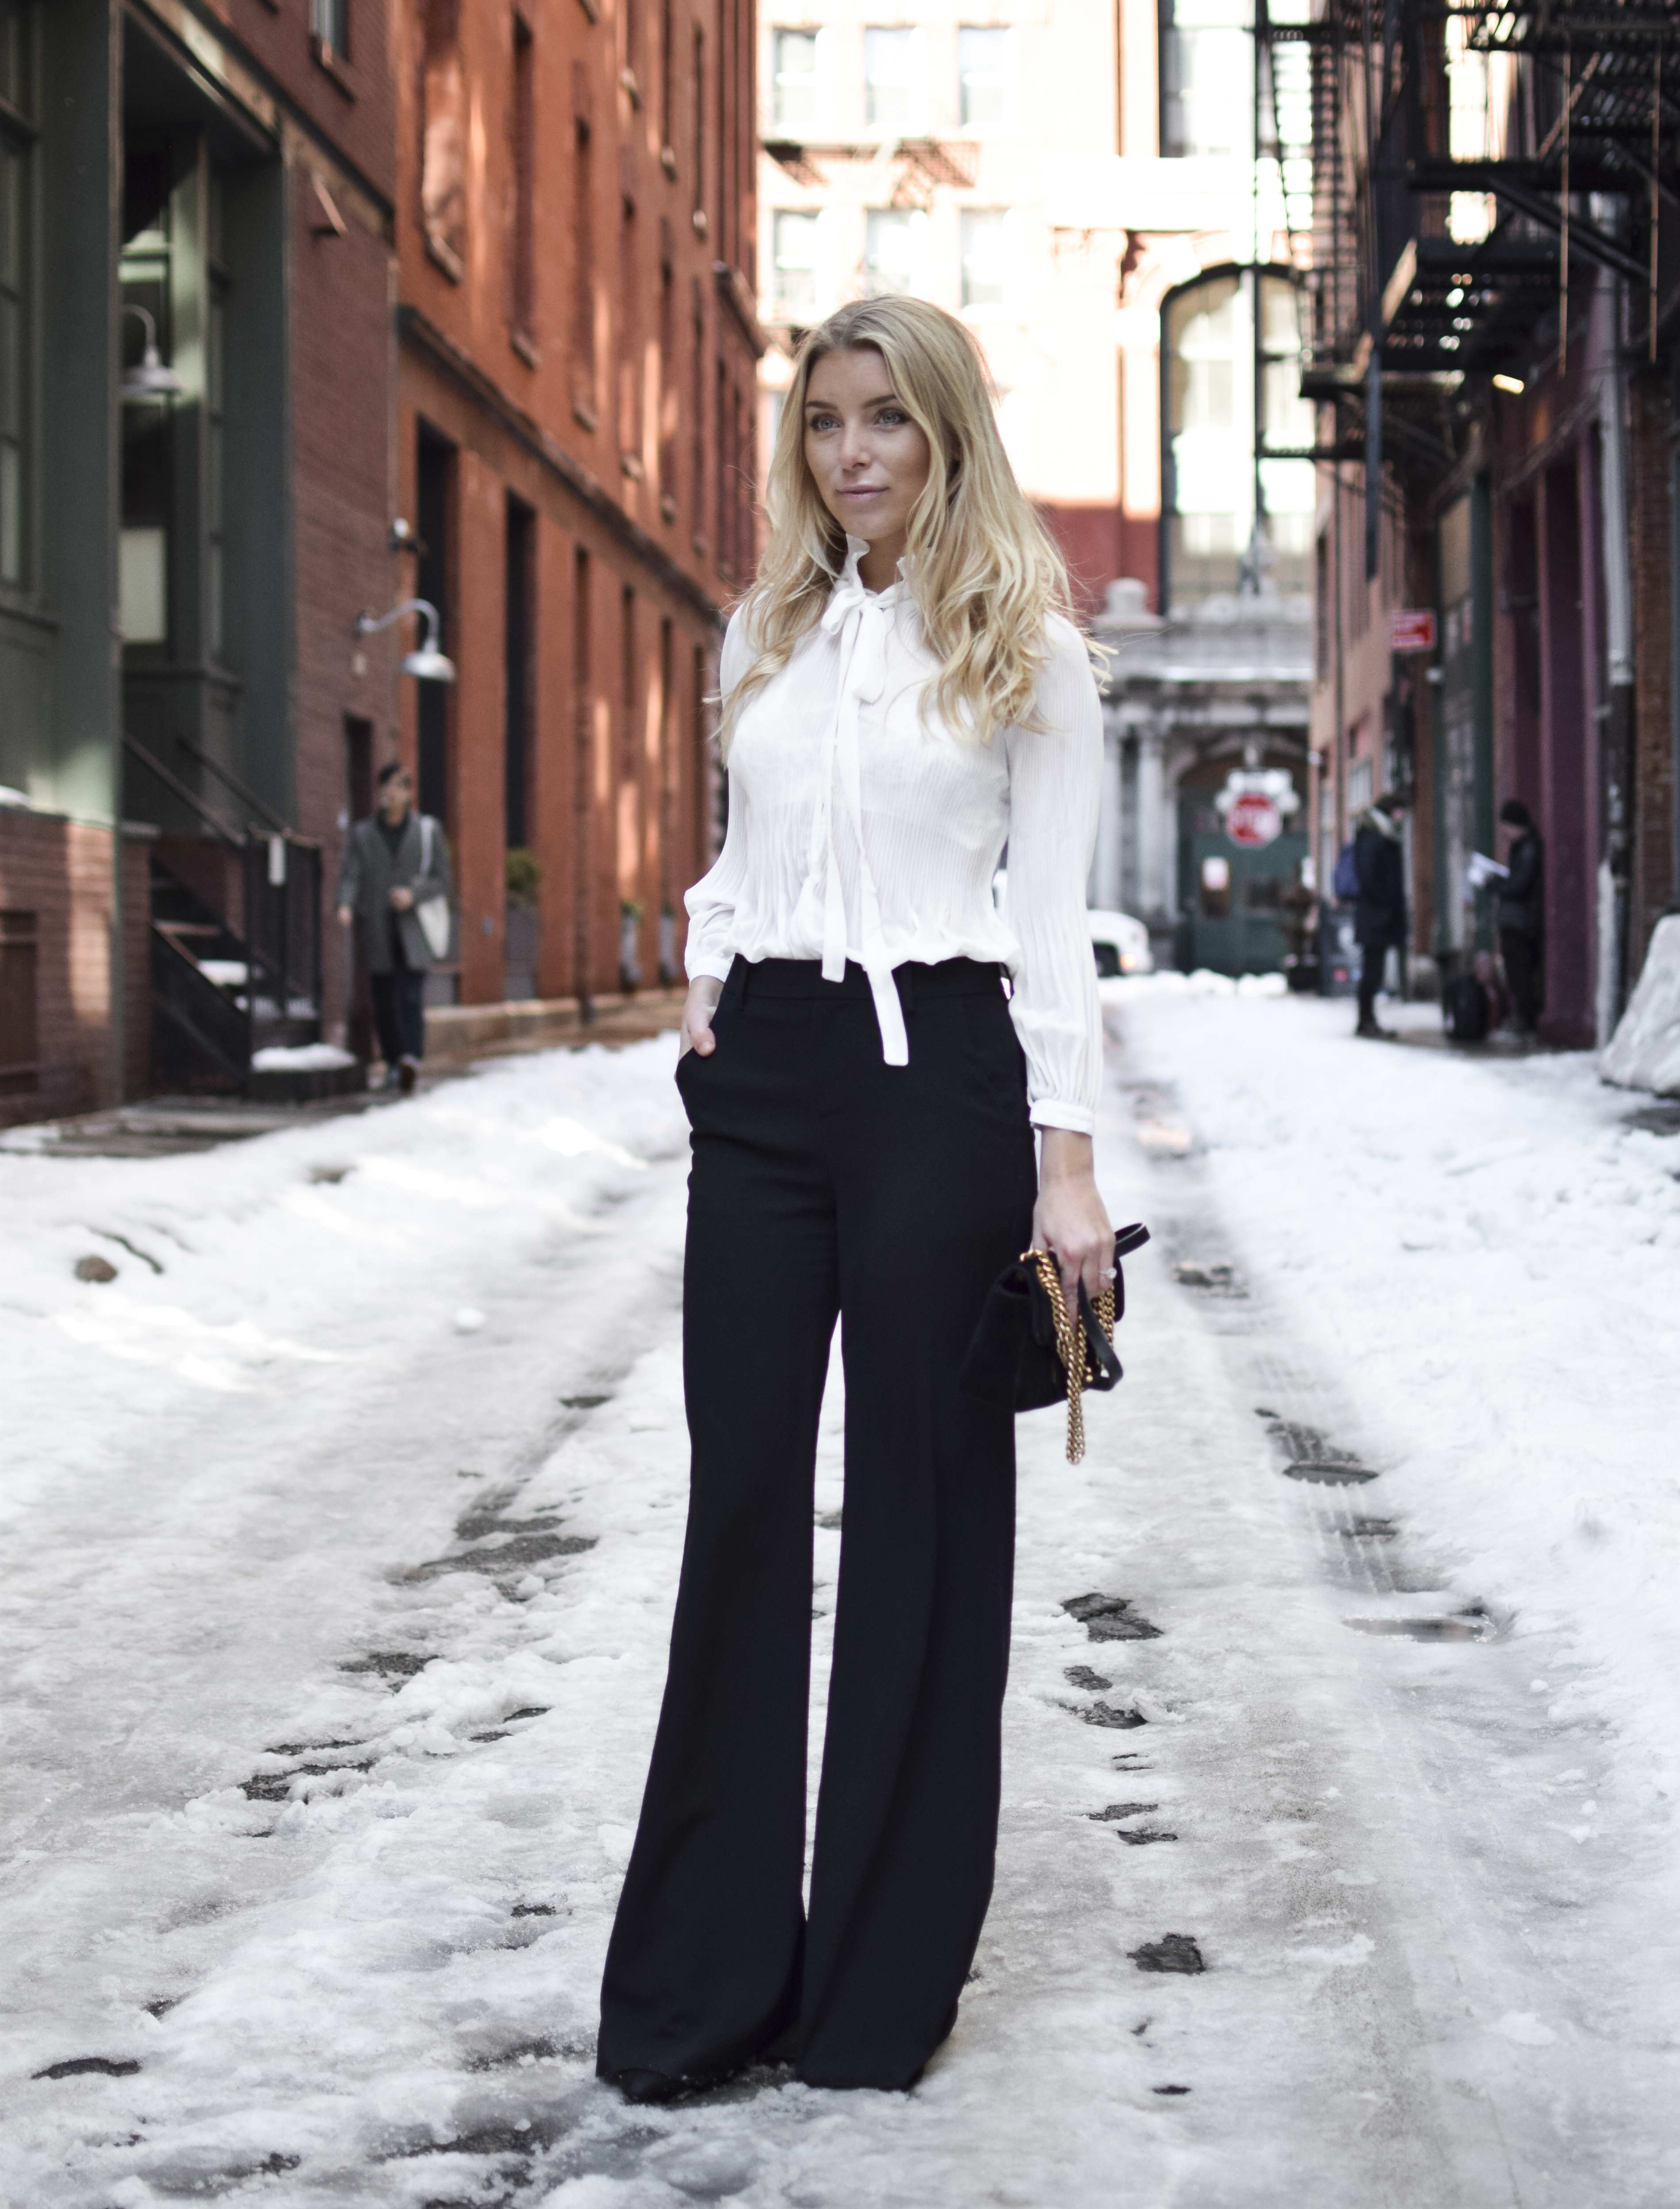 sanne_outfit_tribeca_new_york_3